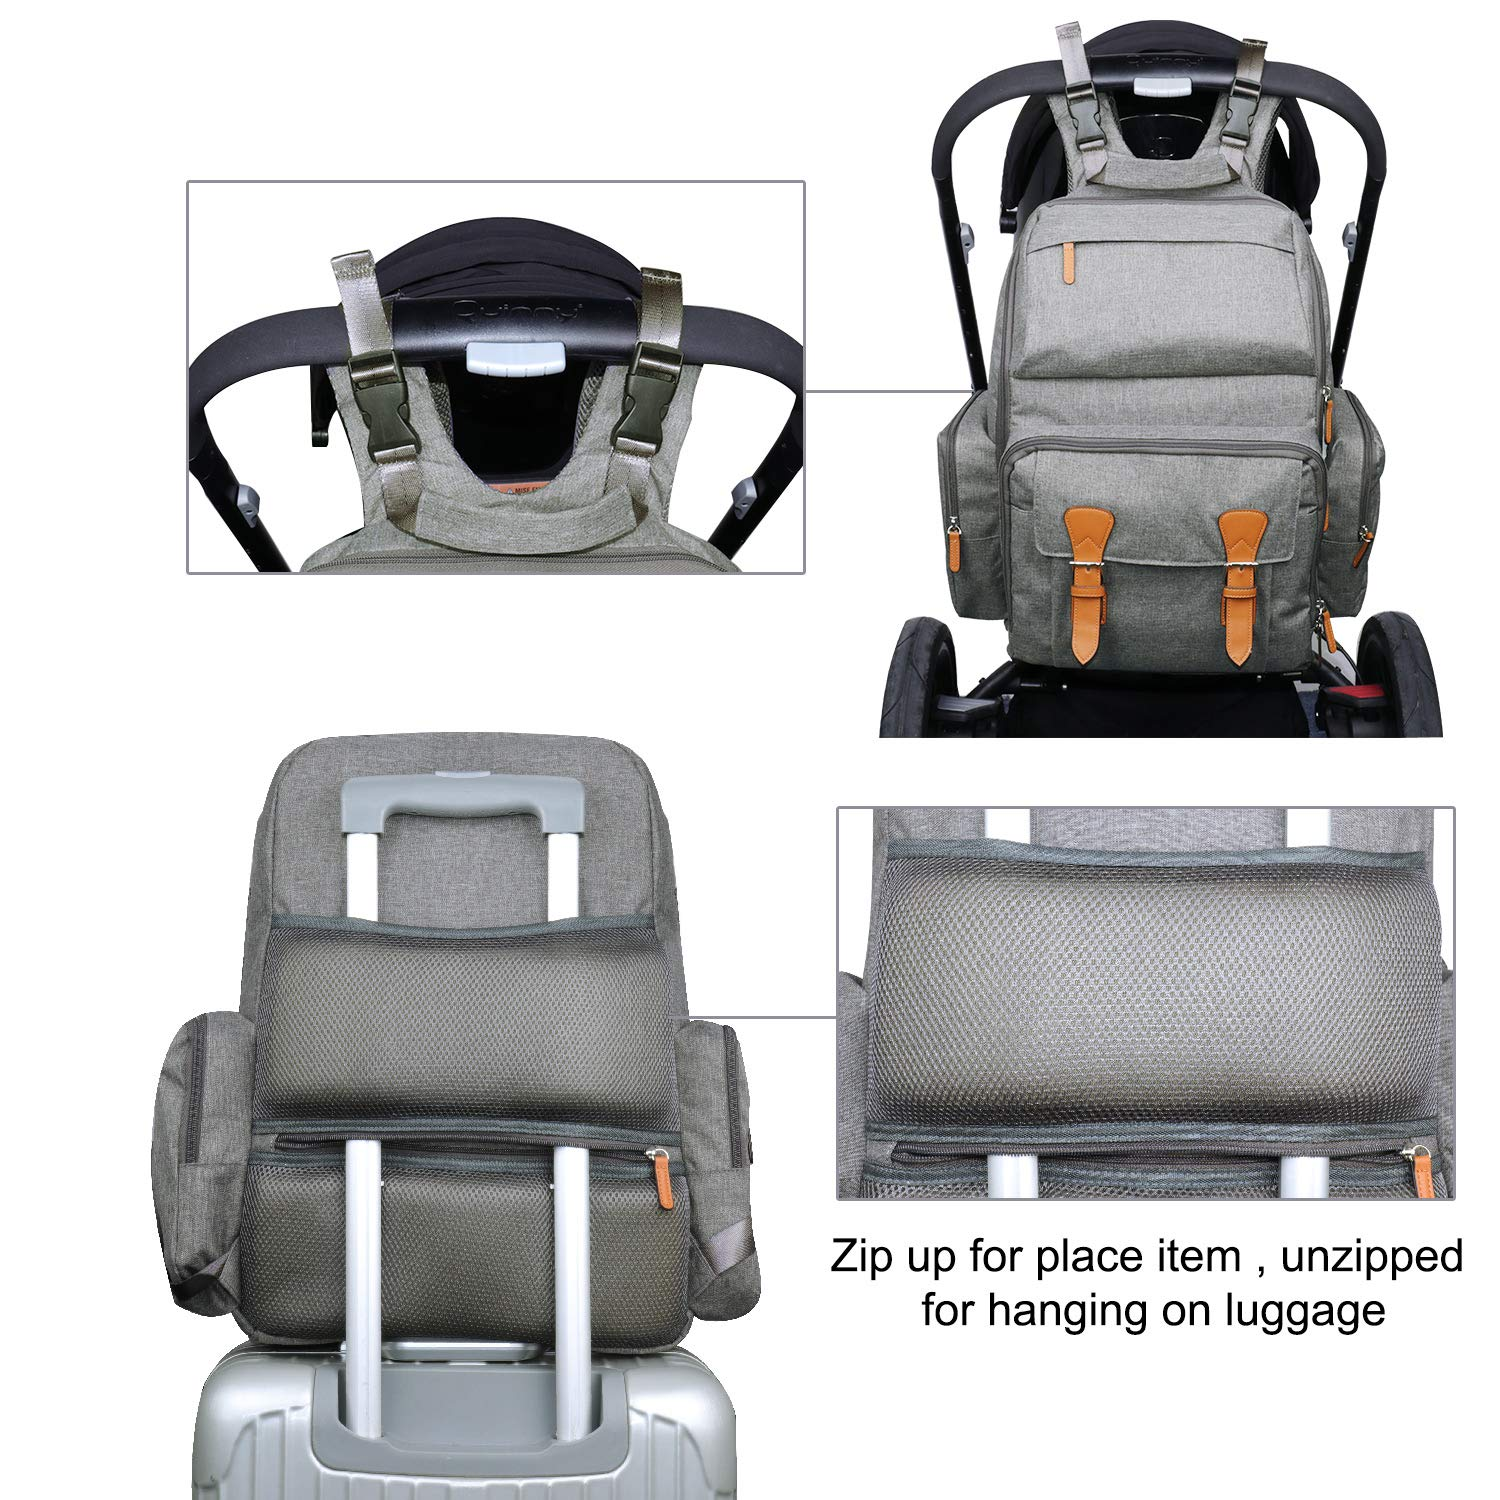 Estarer Baby Changing Backpack Bag with Changing Mat for Twins,Water Resistant Nappy Rucksack Large Diaper Bag for Pram Grey